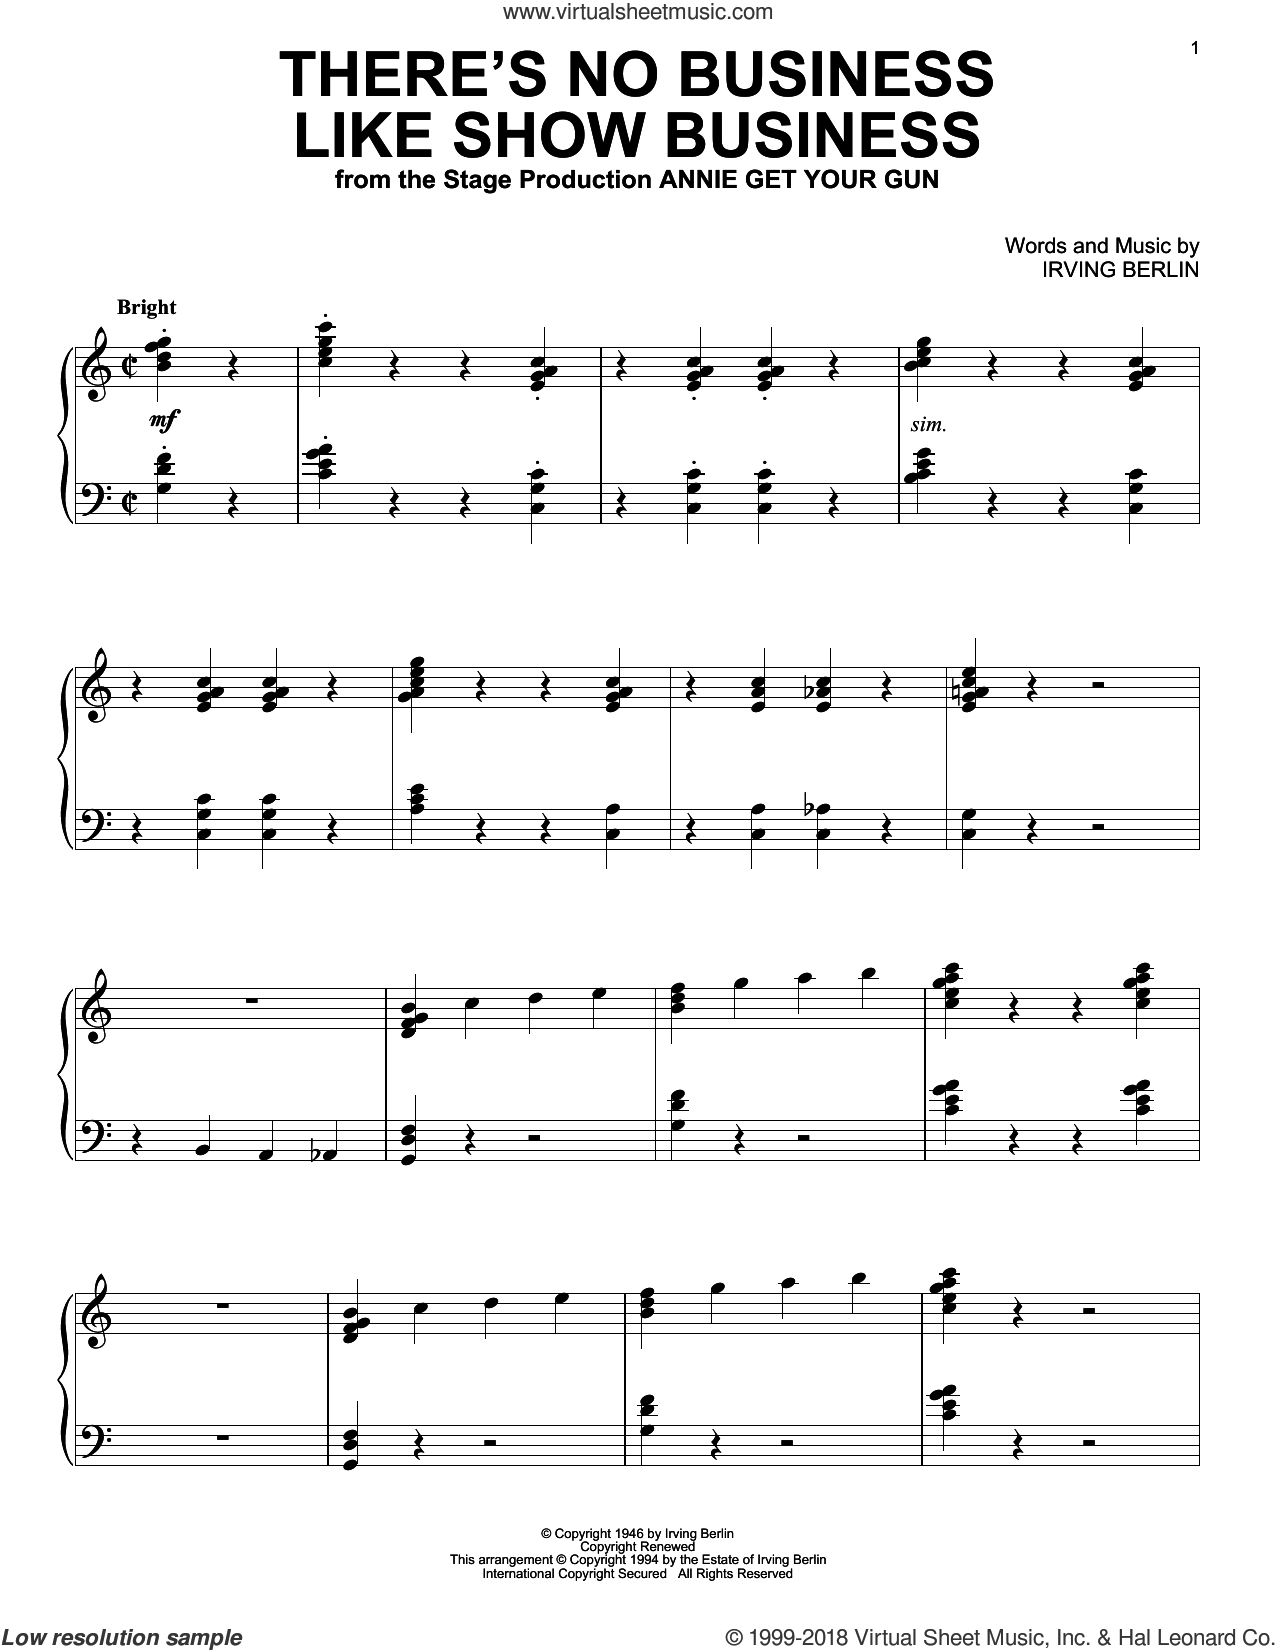 There's No Business Like Show Business sheet music for piano solo by Irving Berlin, intermediate skill level